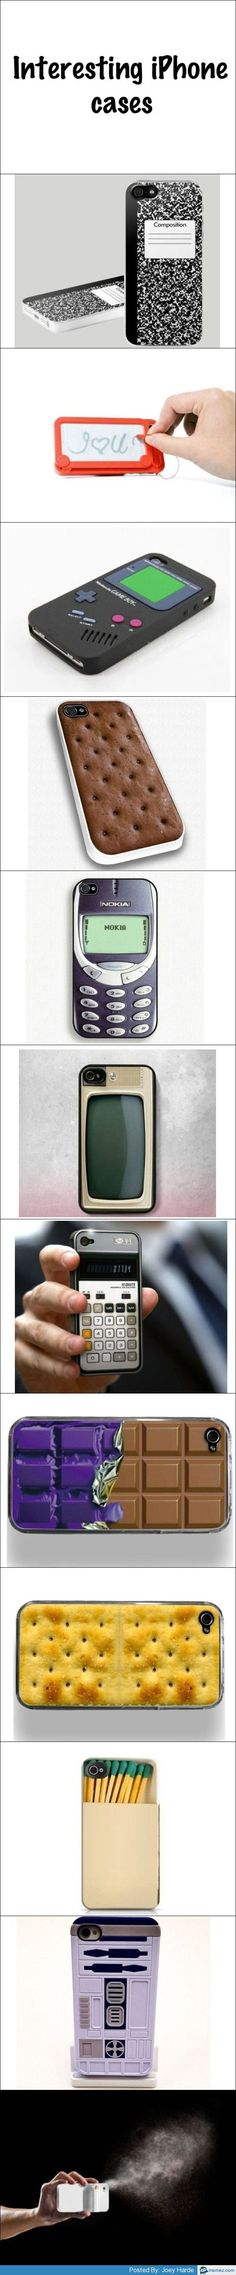 Coolest iPhone cases I know I don't even have a phone but these are still REALLY cool!